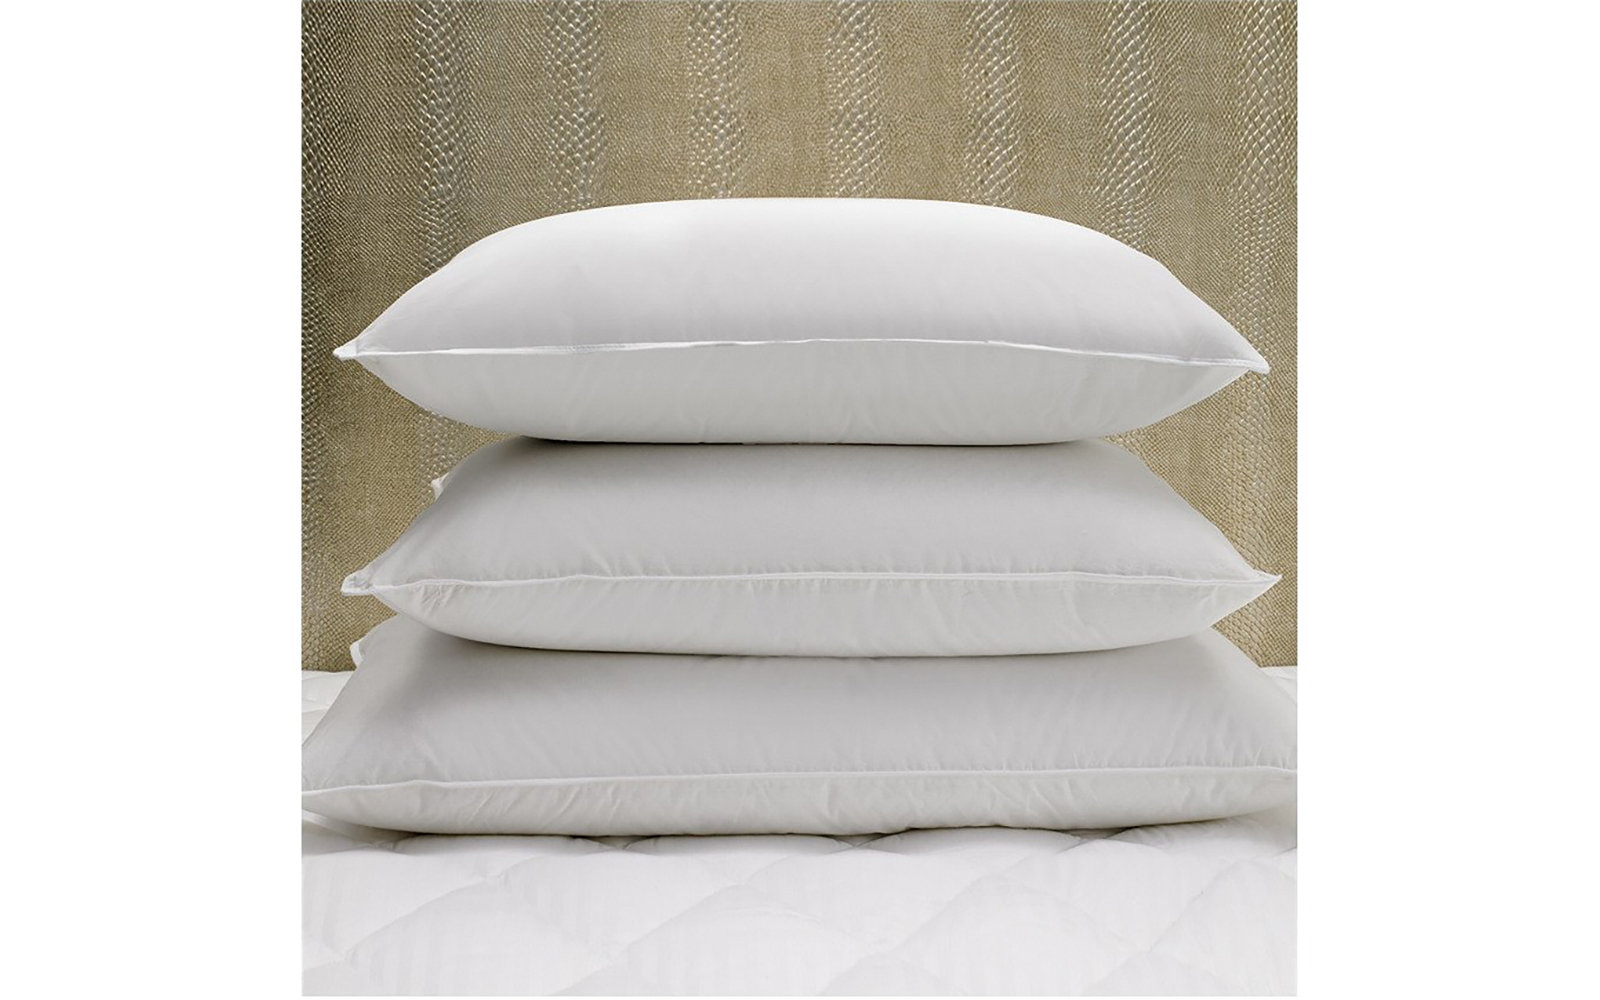 The W Striped Cover & Down Pillow